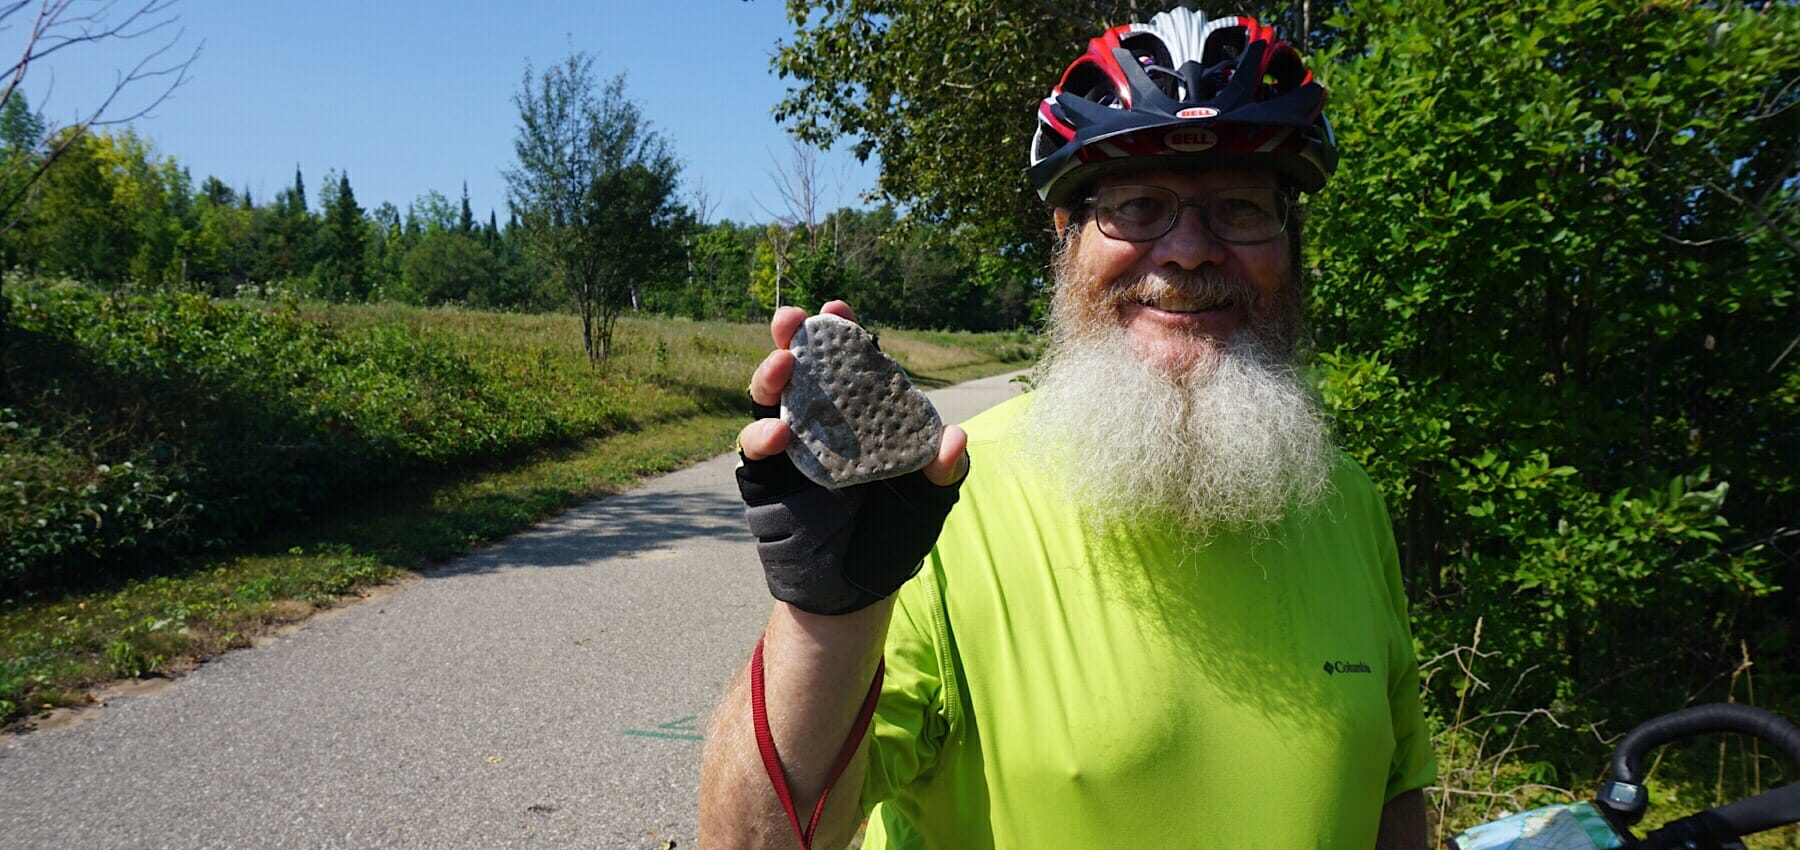 Finding Petoskey Stones